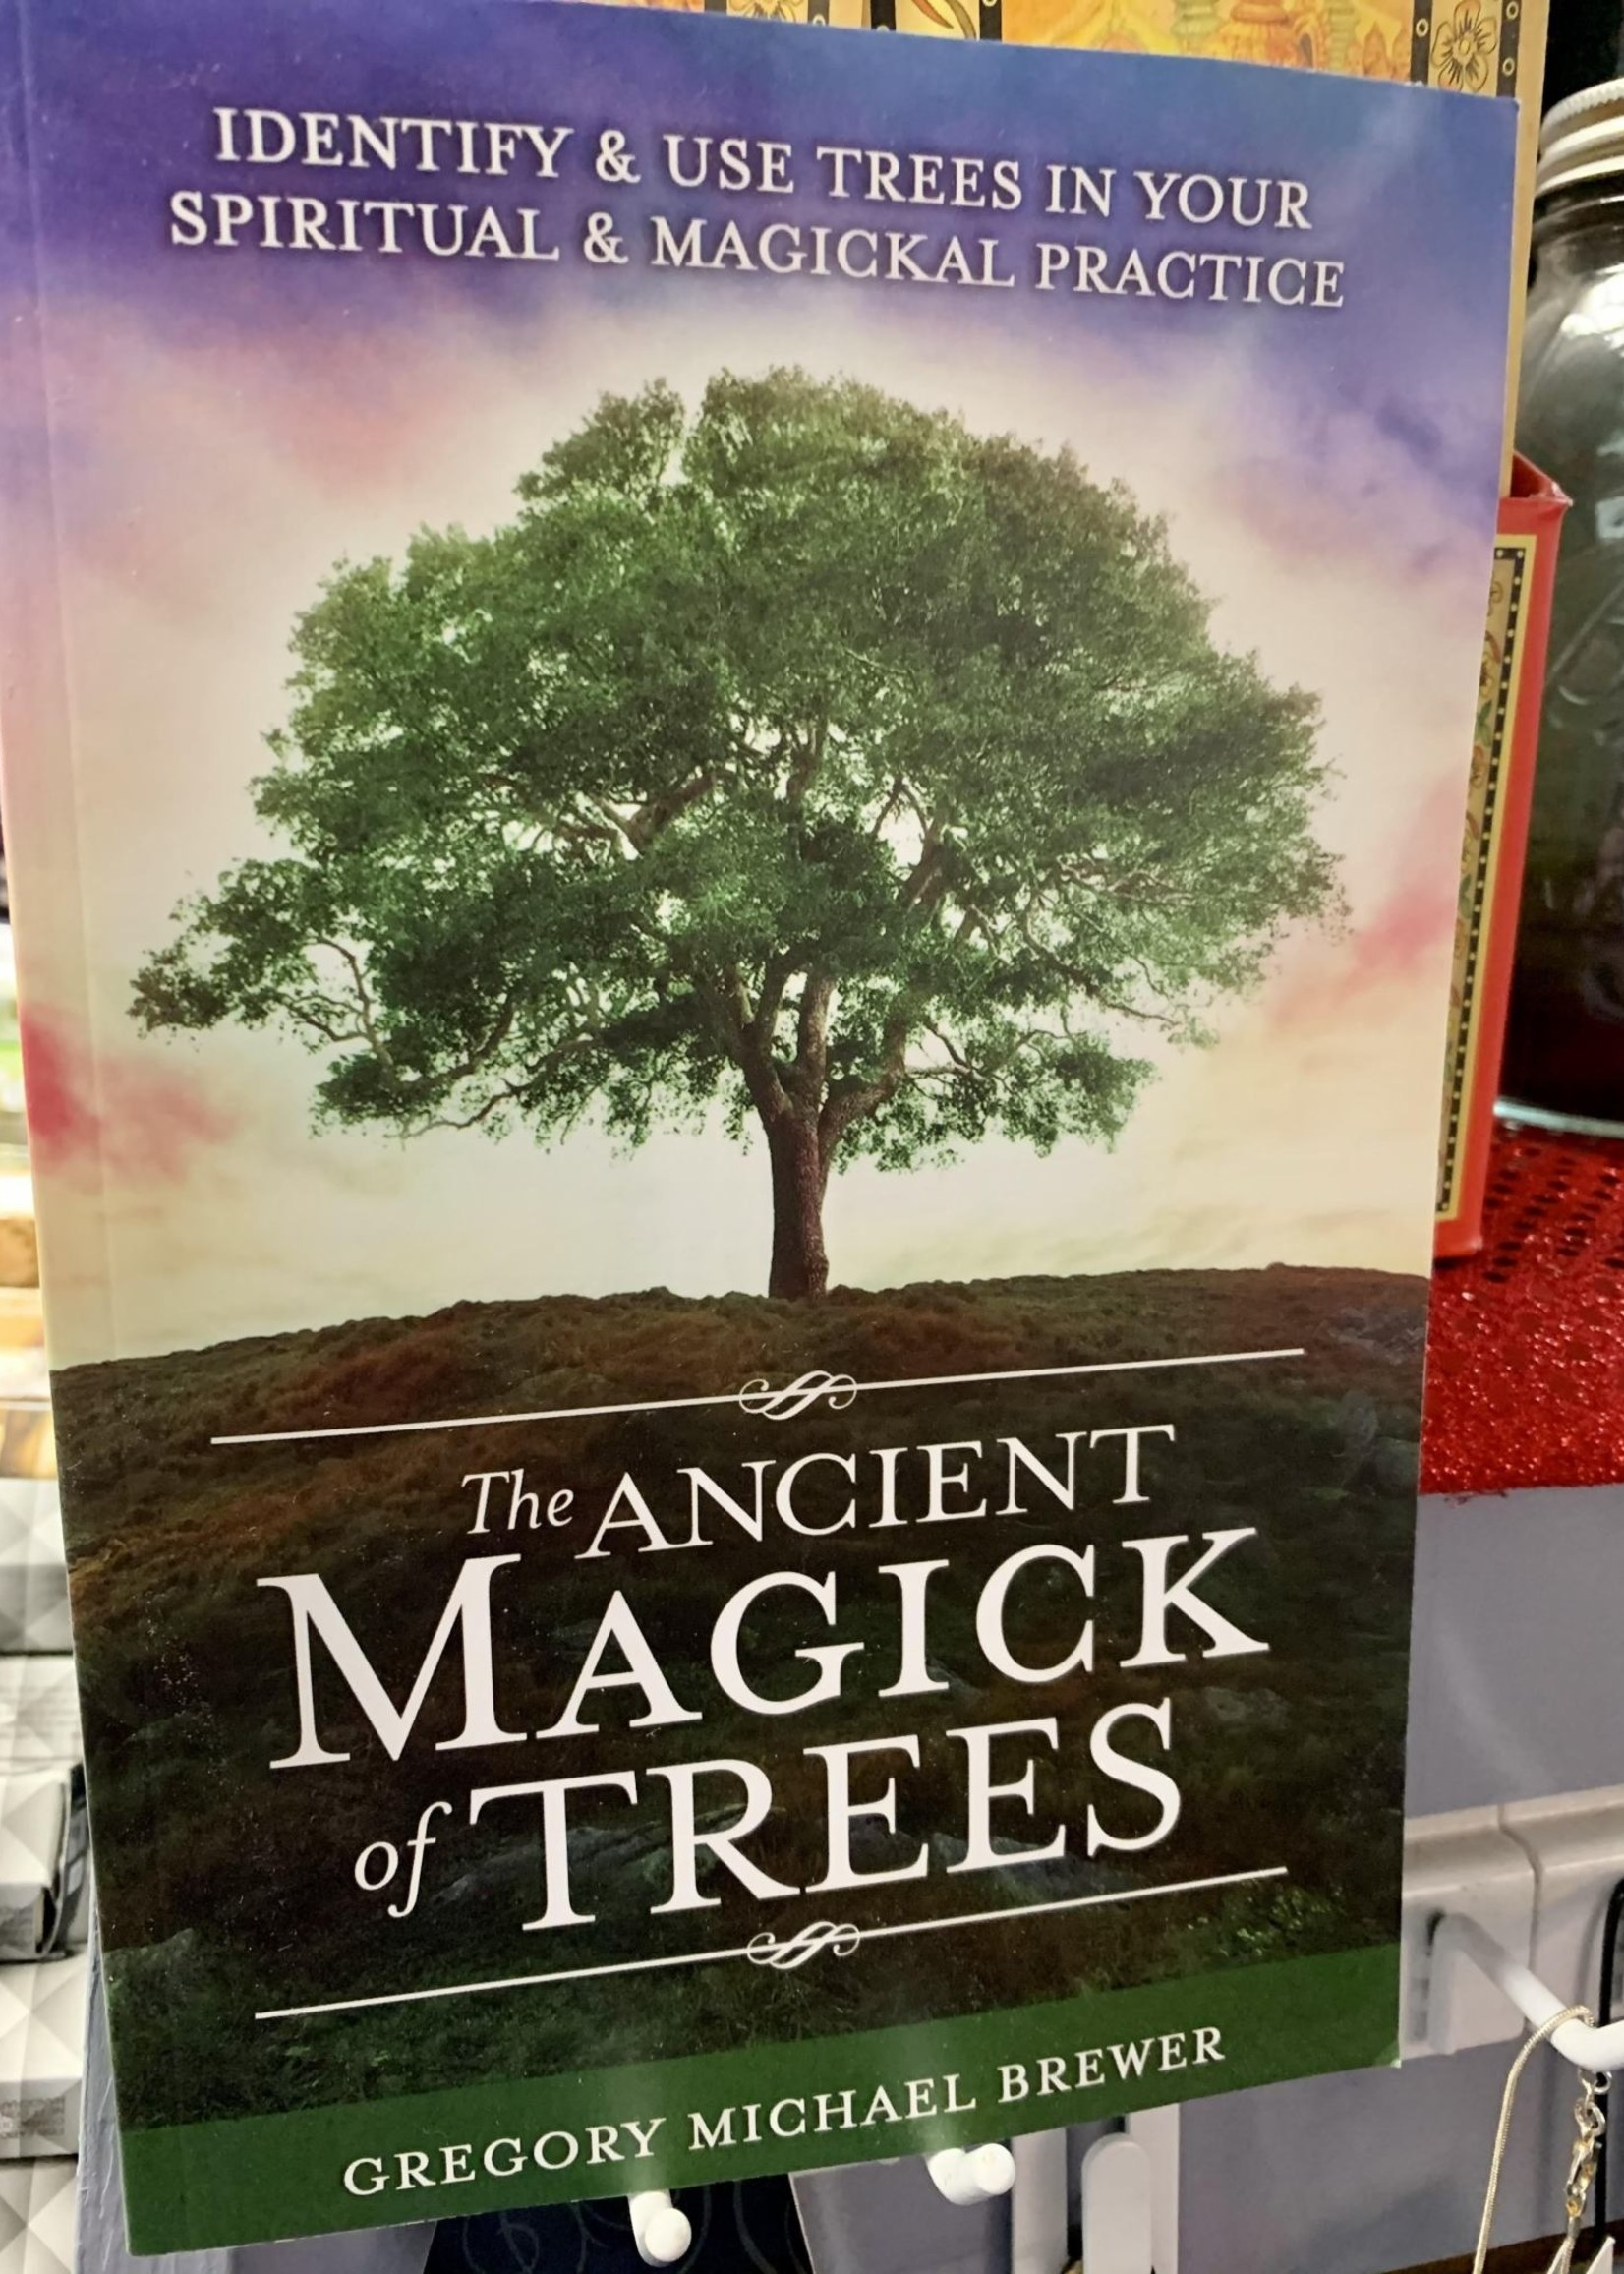 The Ancient Magick of Trees -  BY GREGORY MICHAEL BREWER